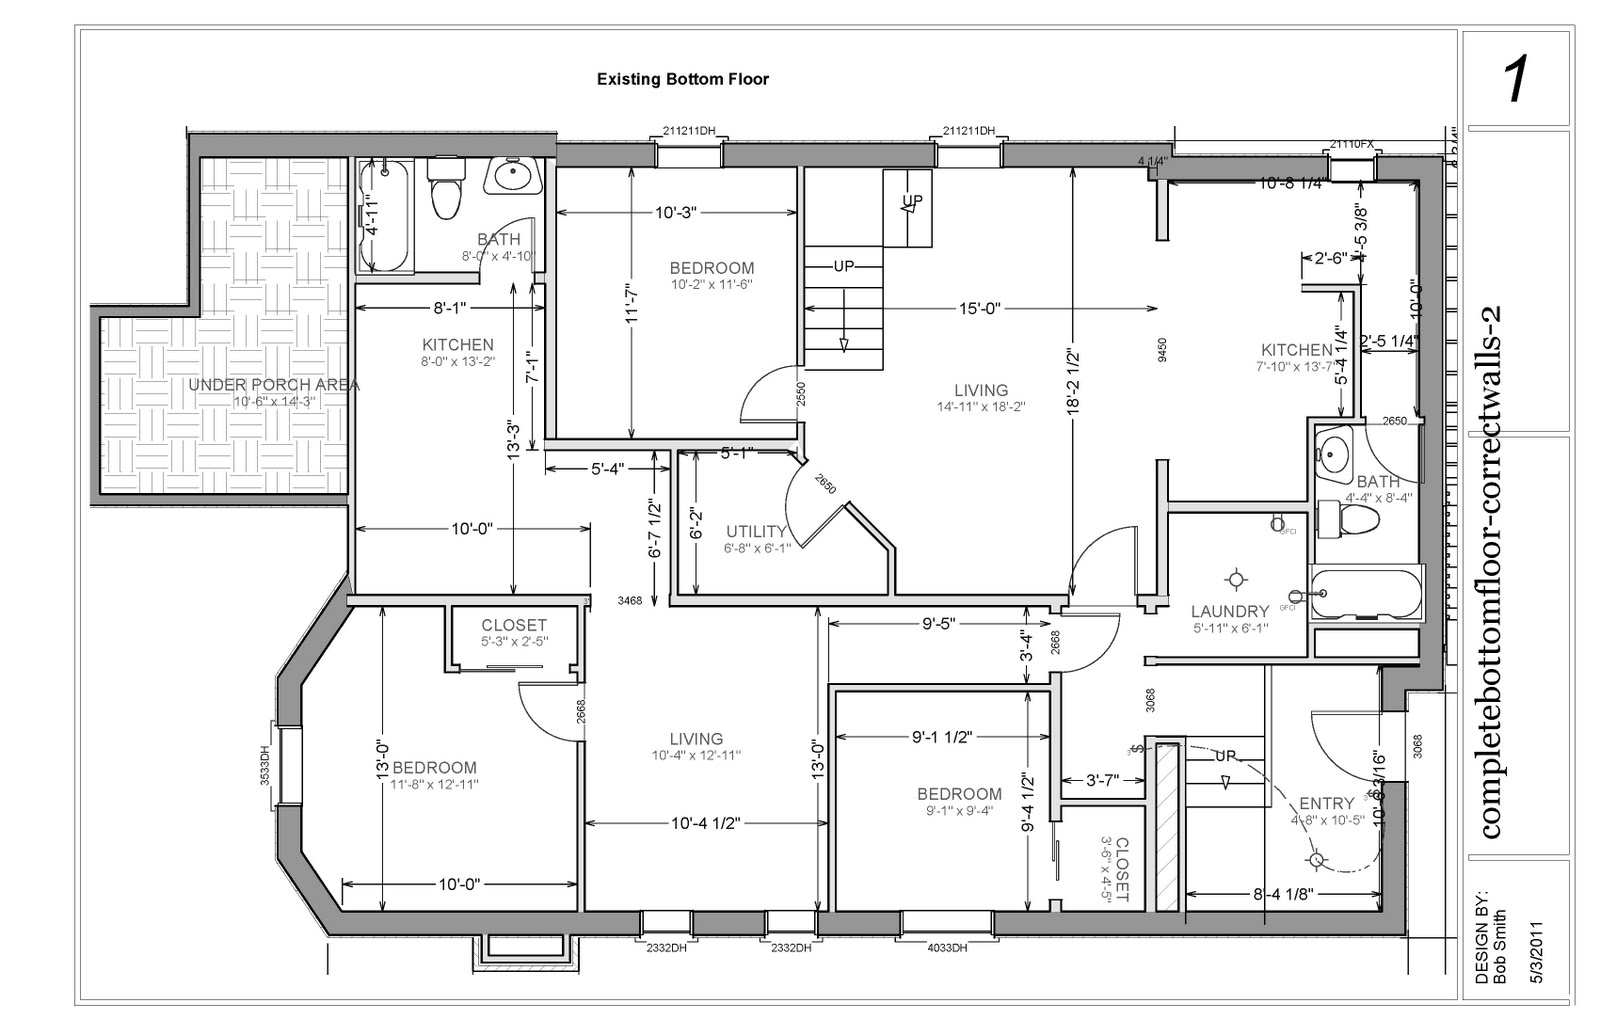 basement apartment plans ideas photo - 5